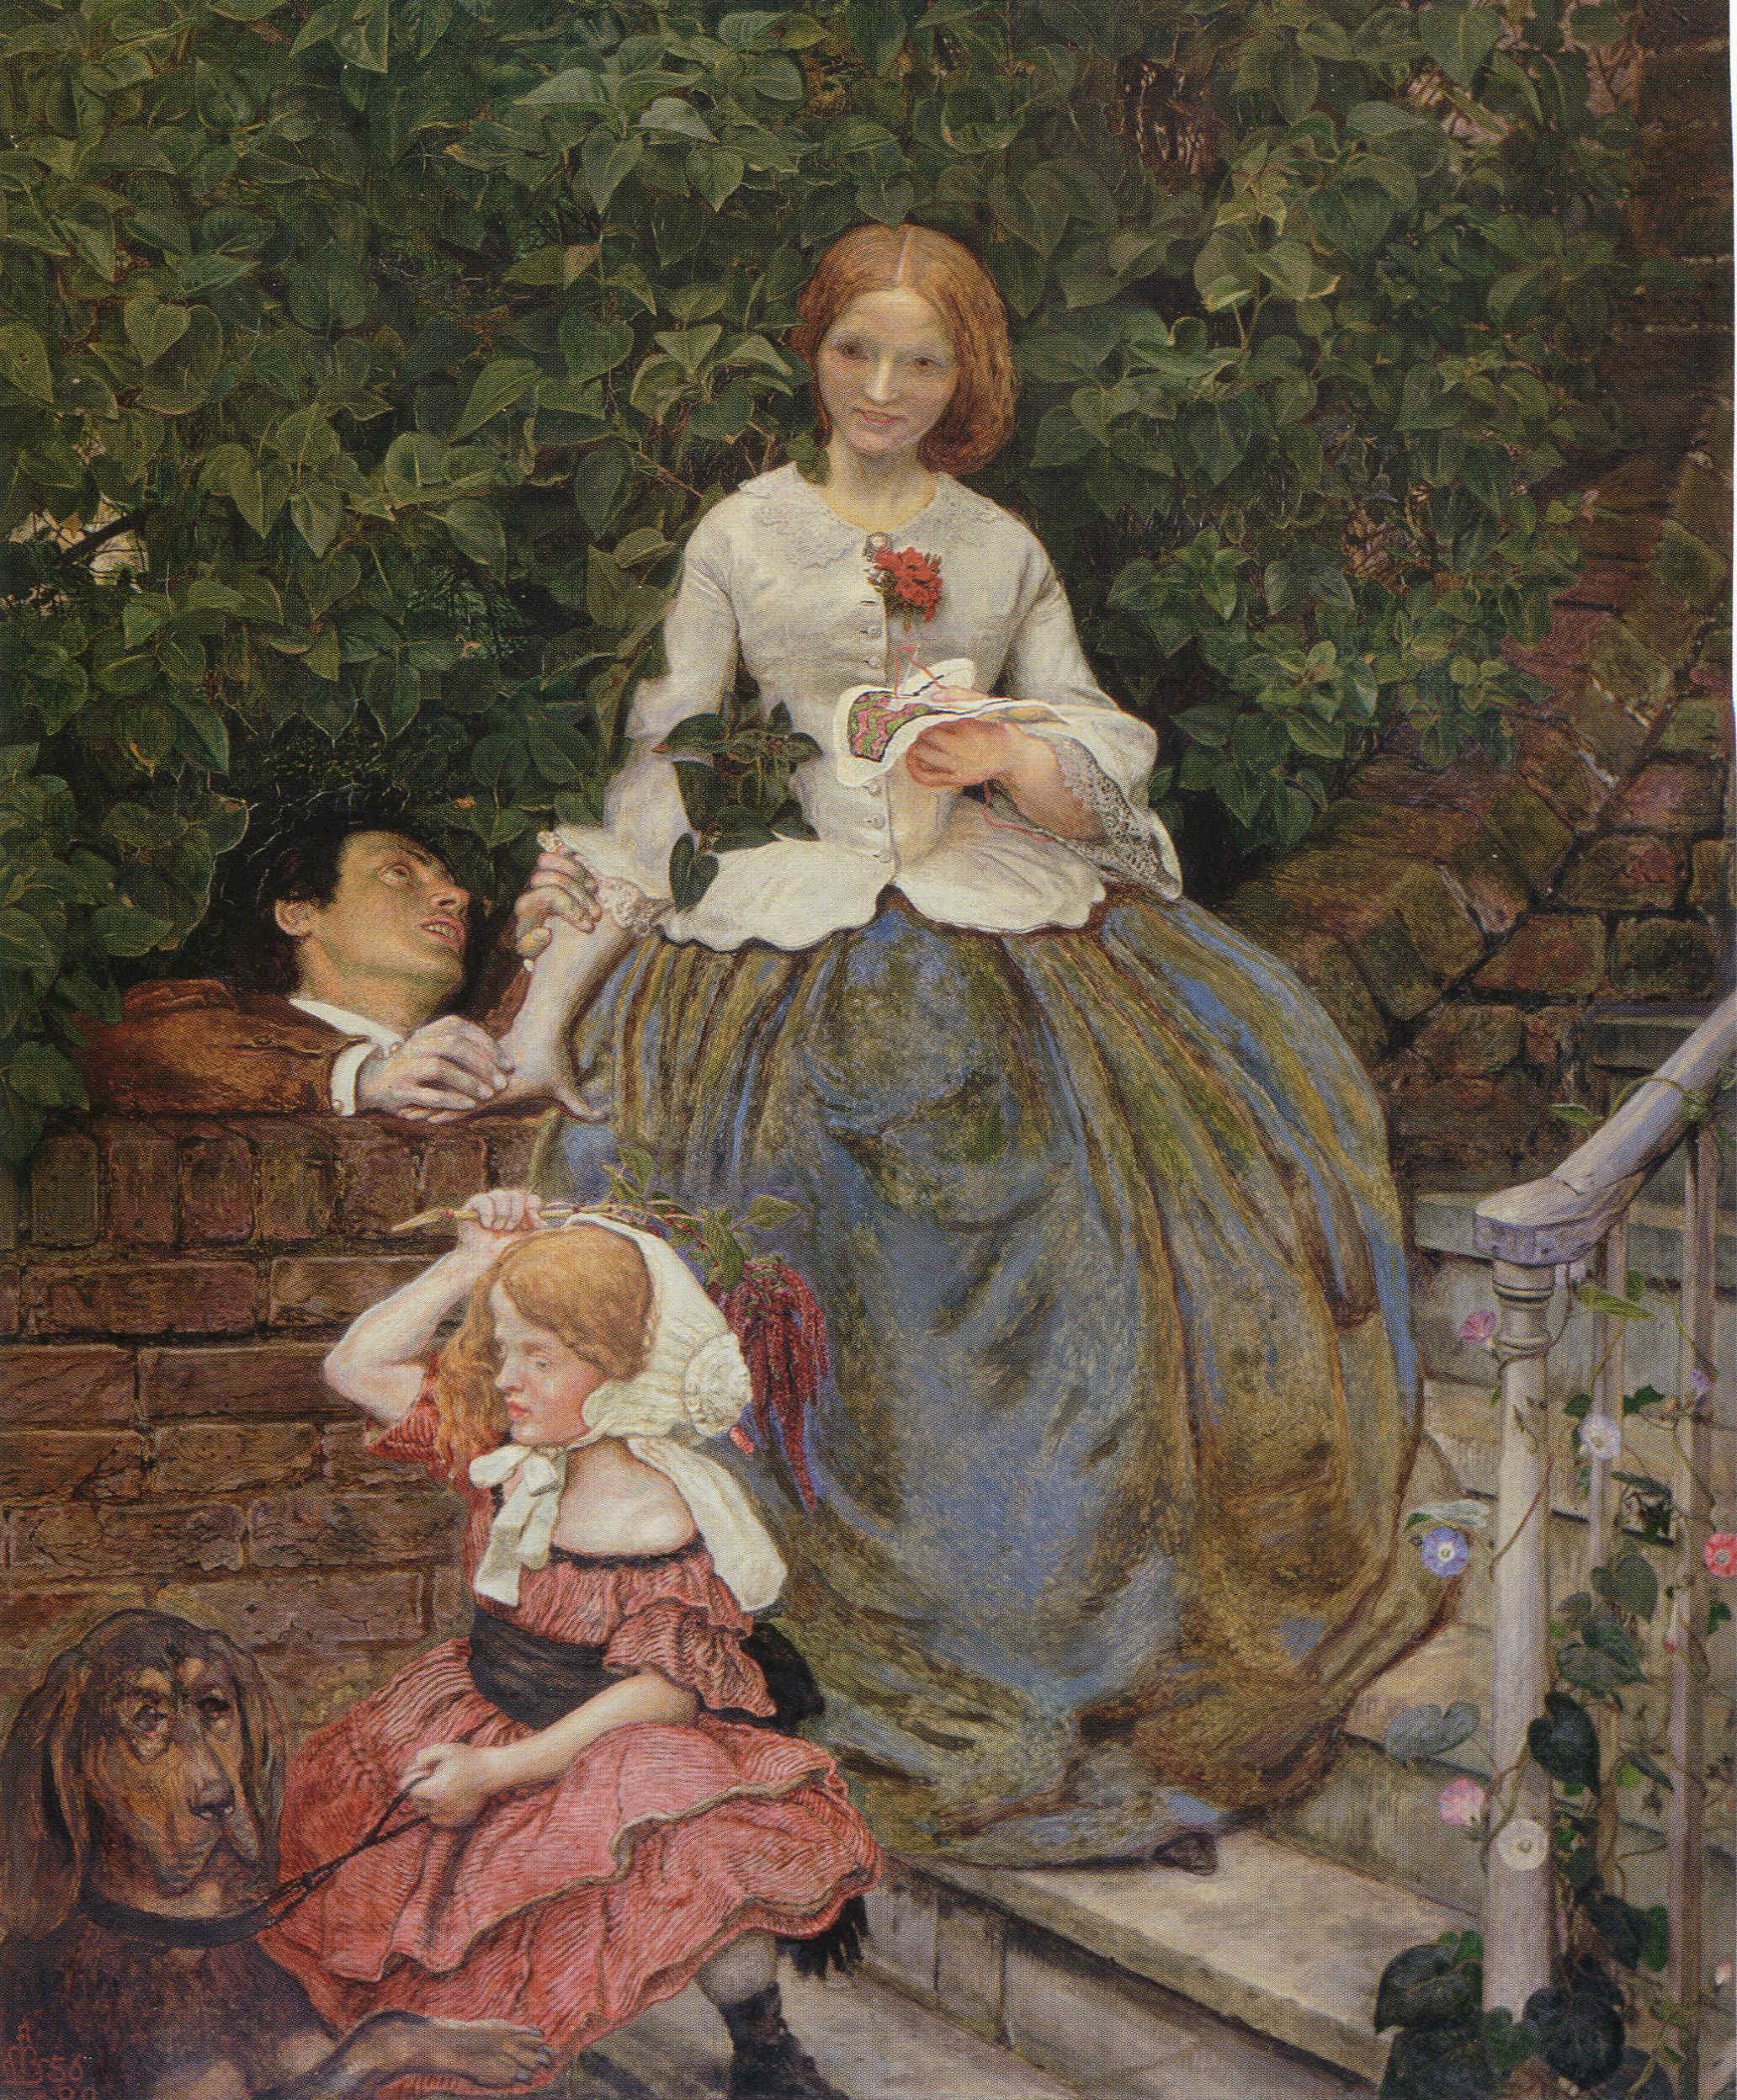 FileStages Of Cruelty By Ford Madox Brown